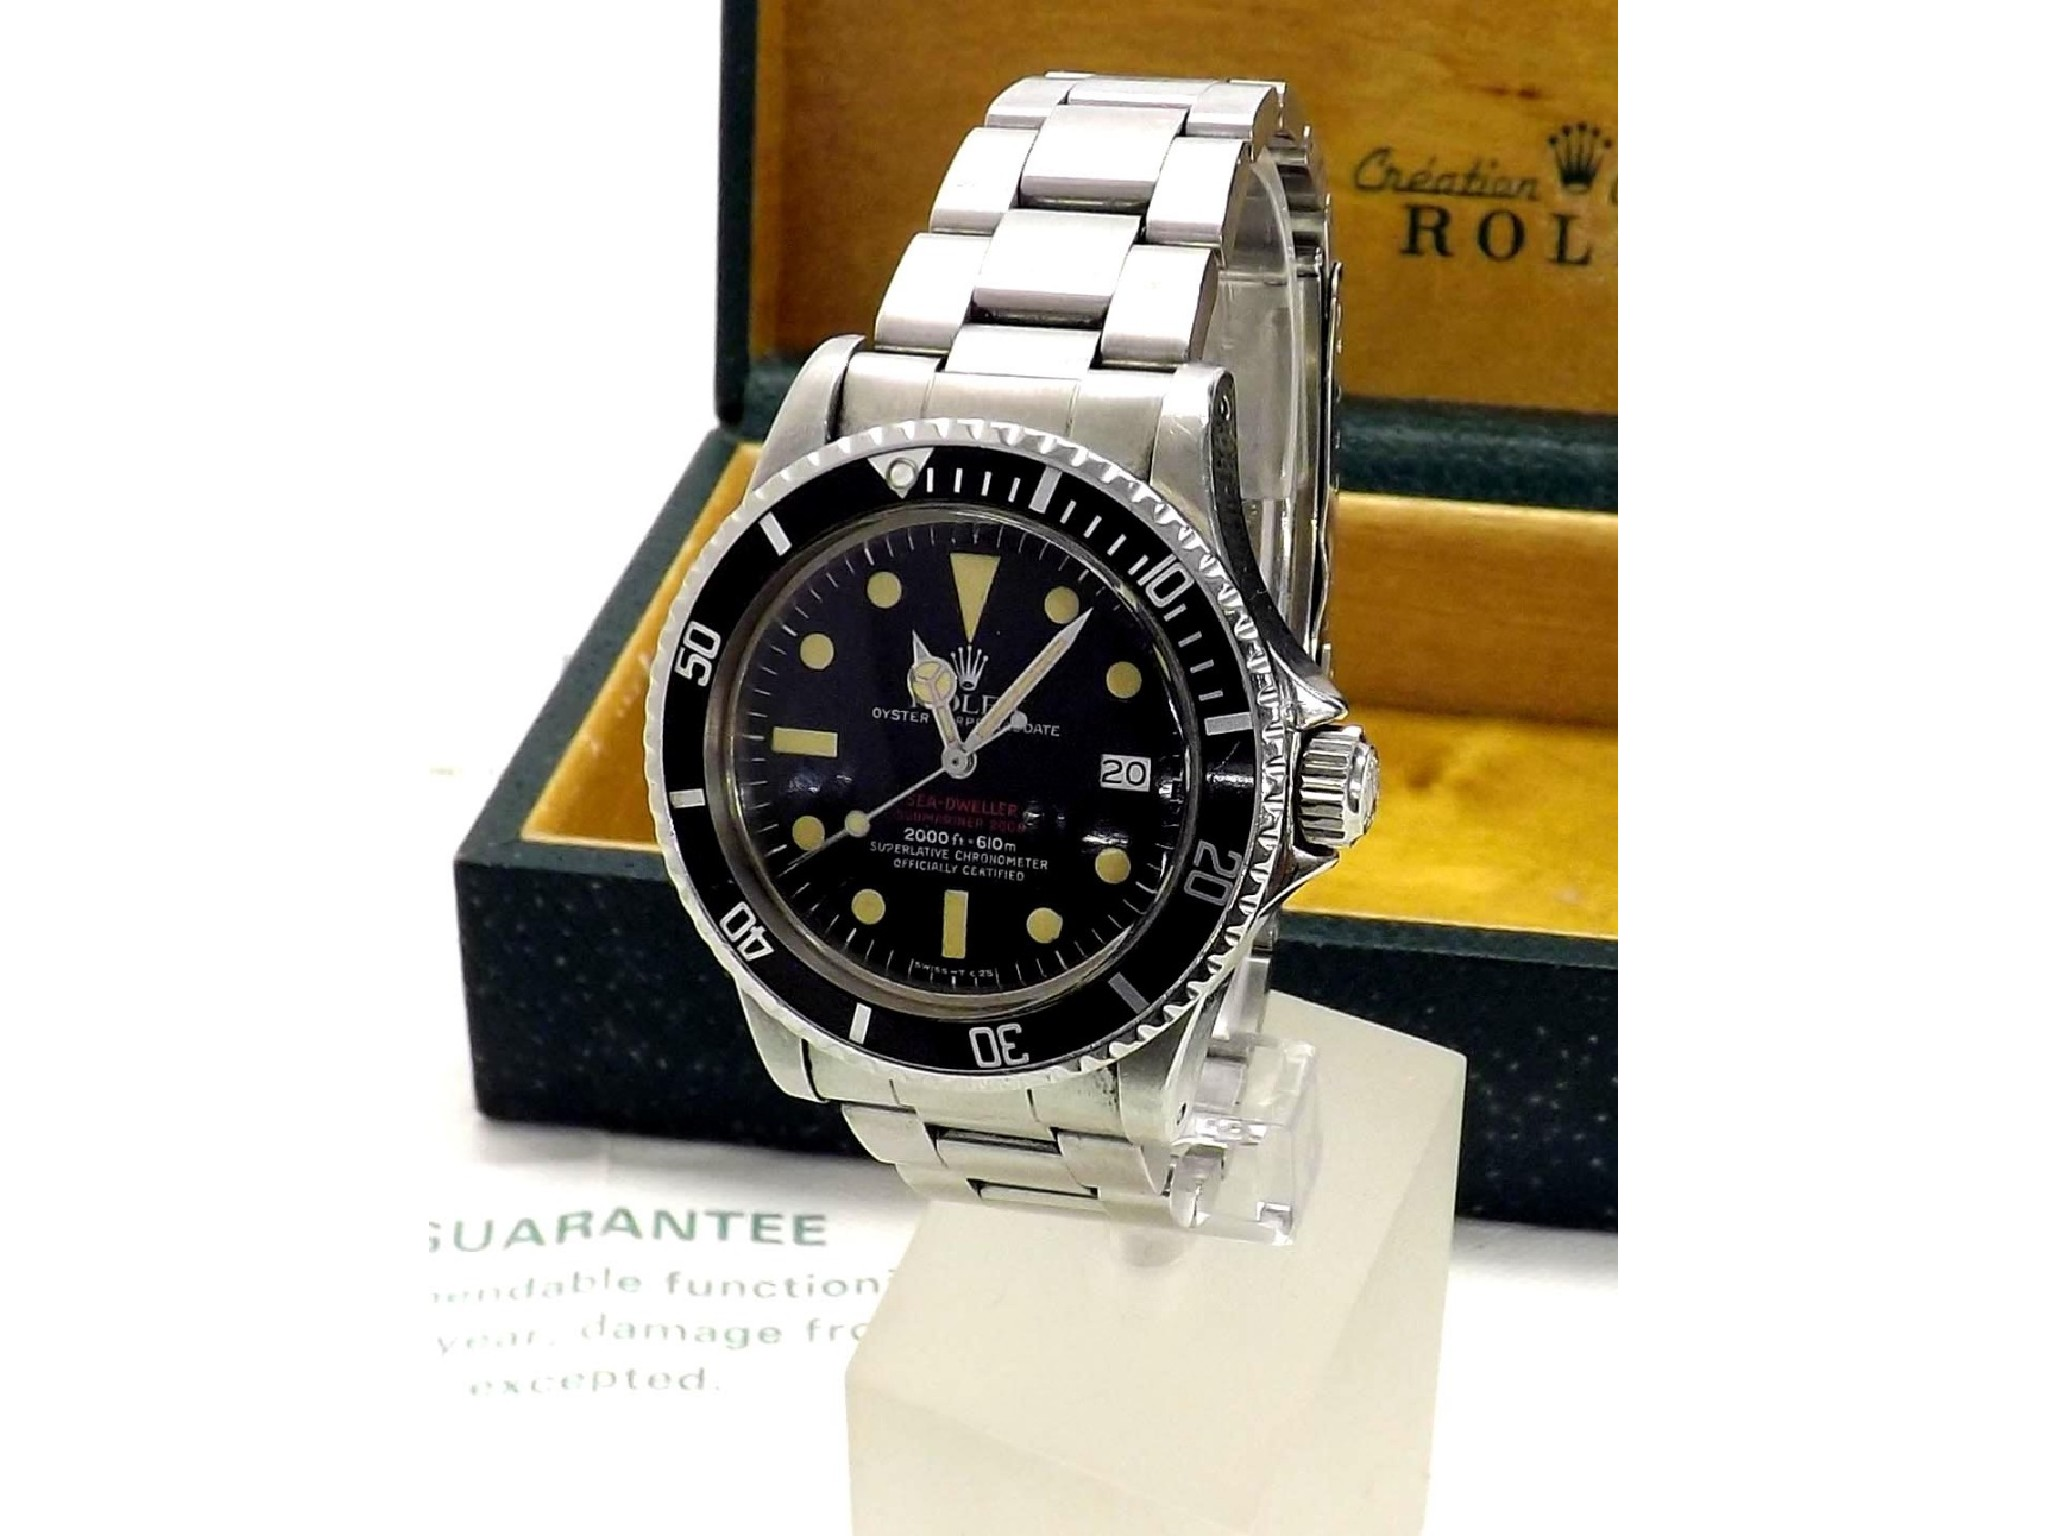 Fine and rare Rolex Oyster Perpetual Sea-Dweller